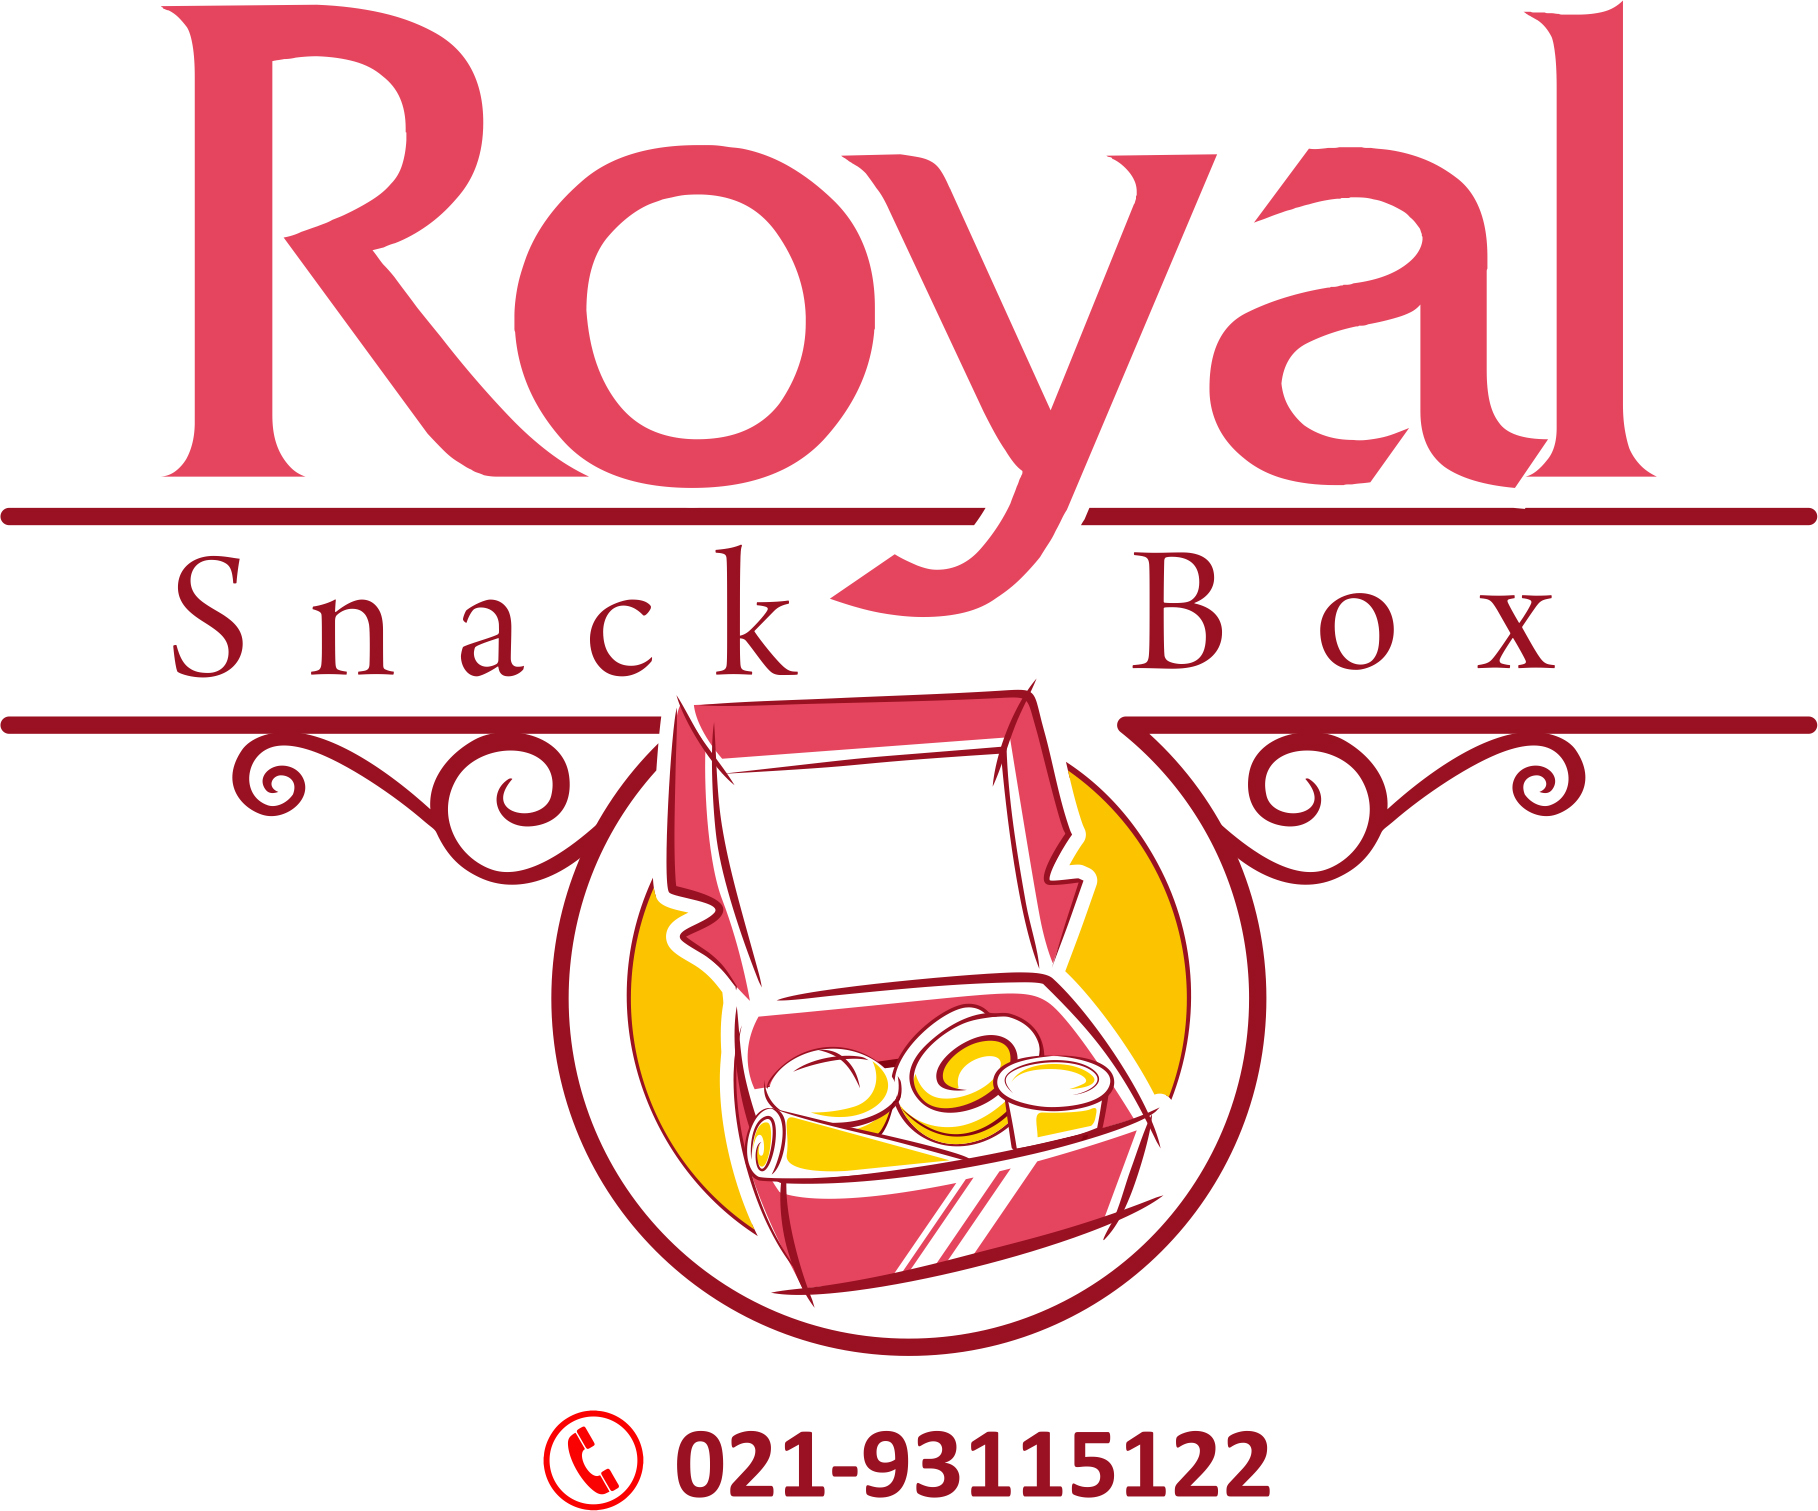 royal snack box healthy amp premium snack